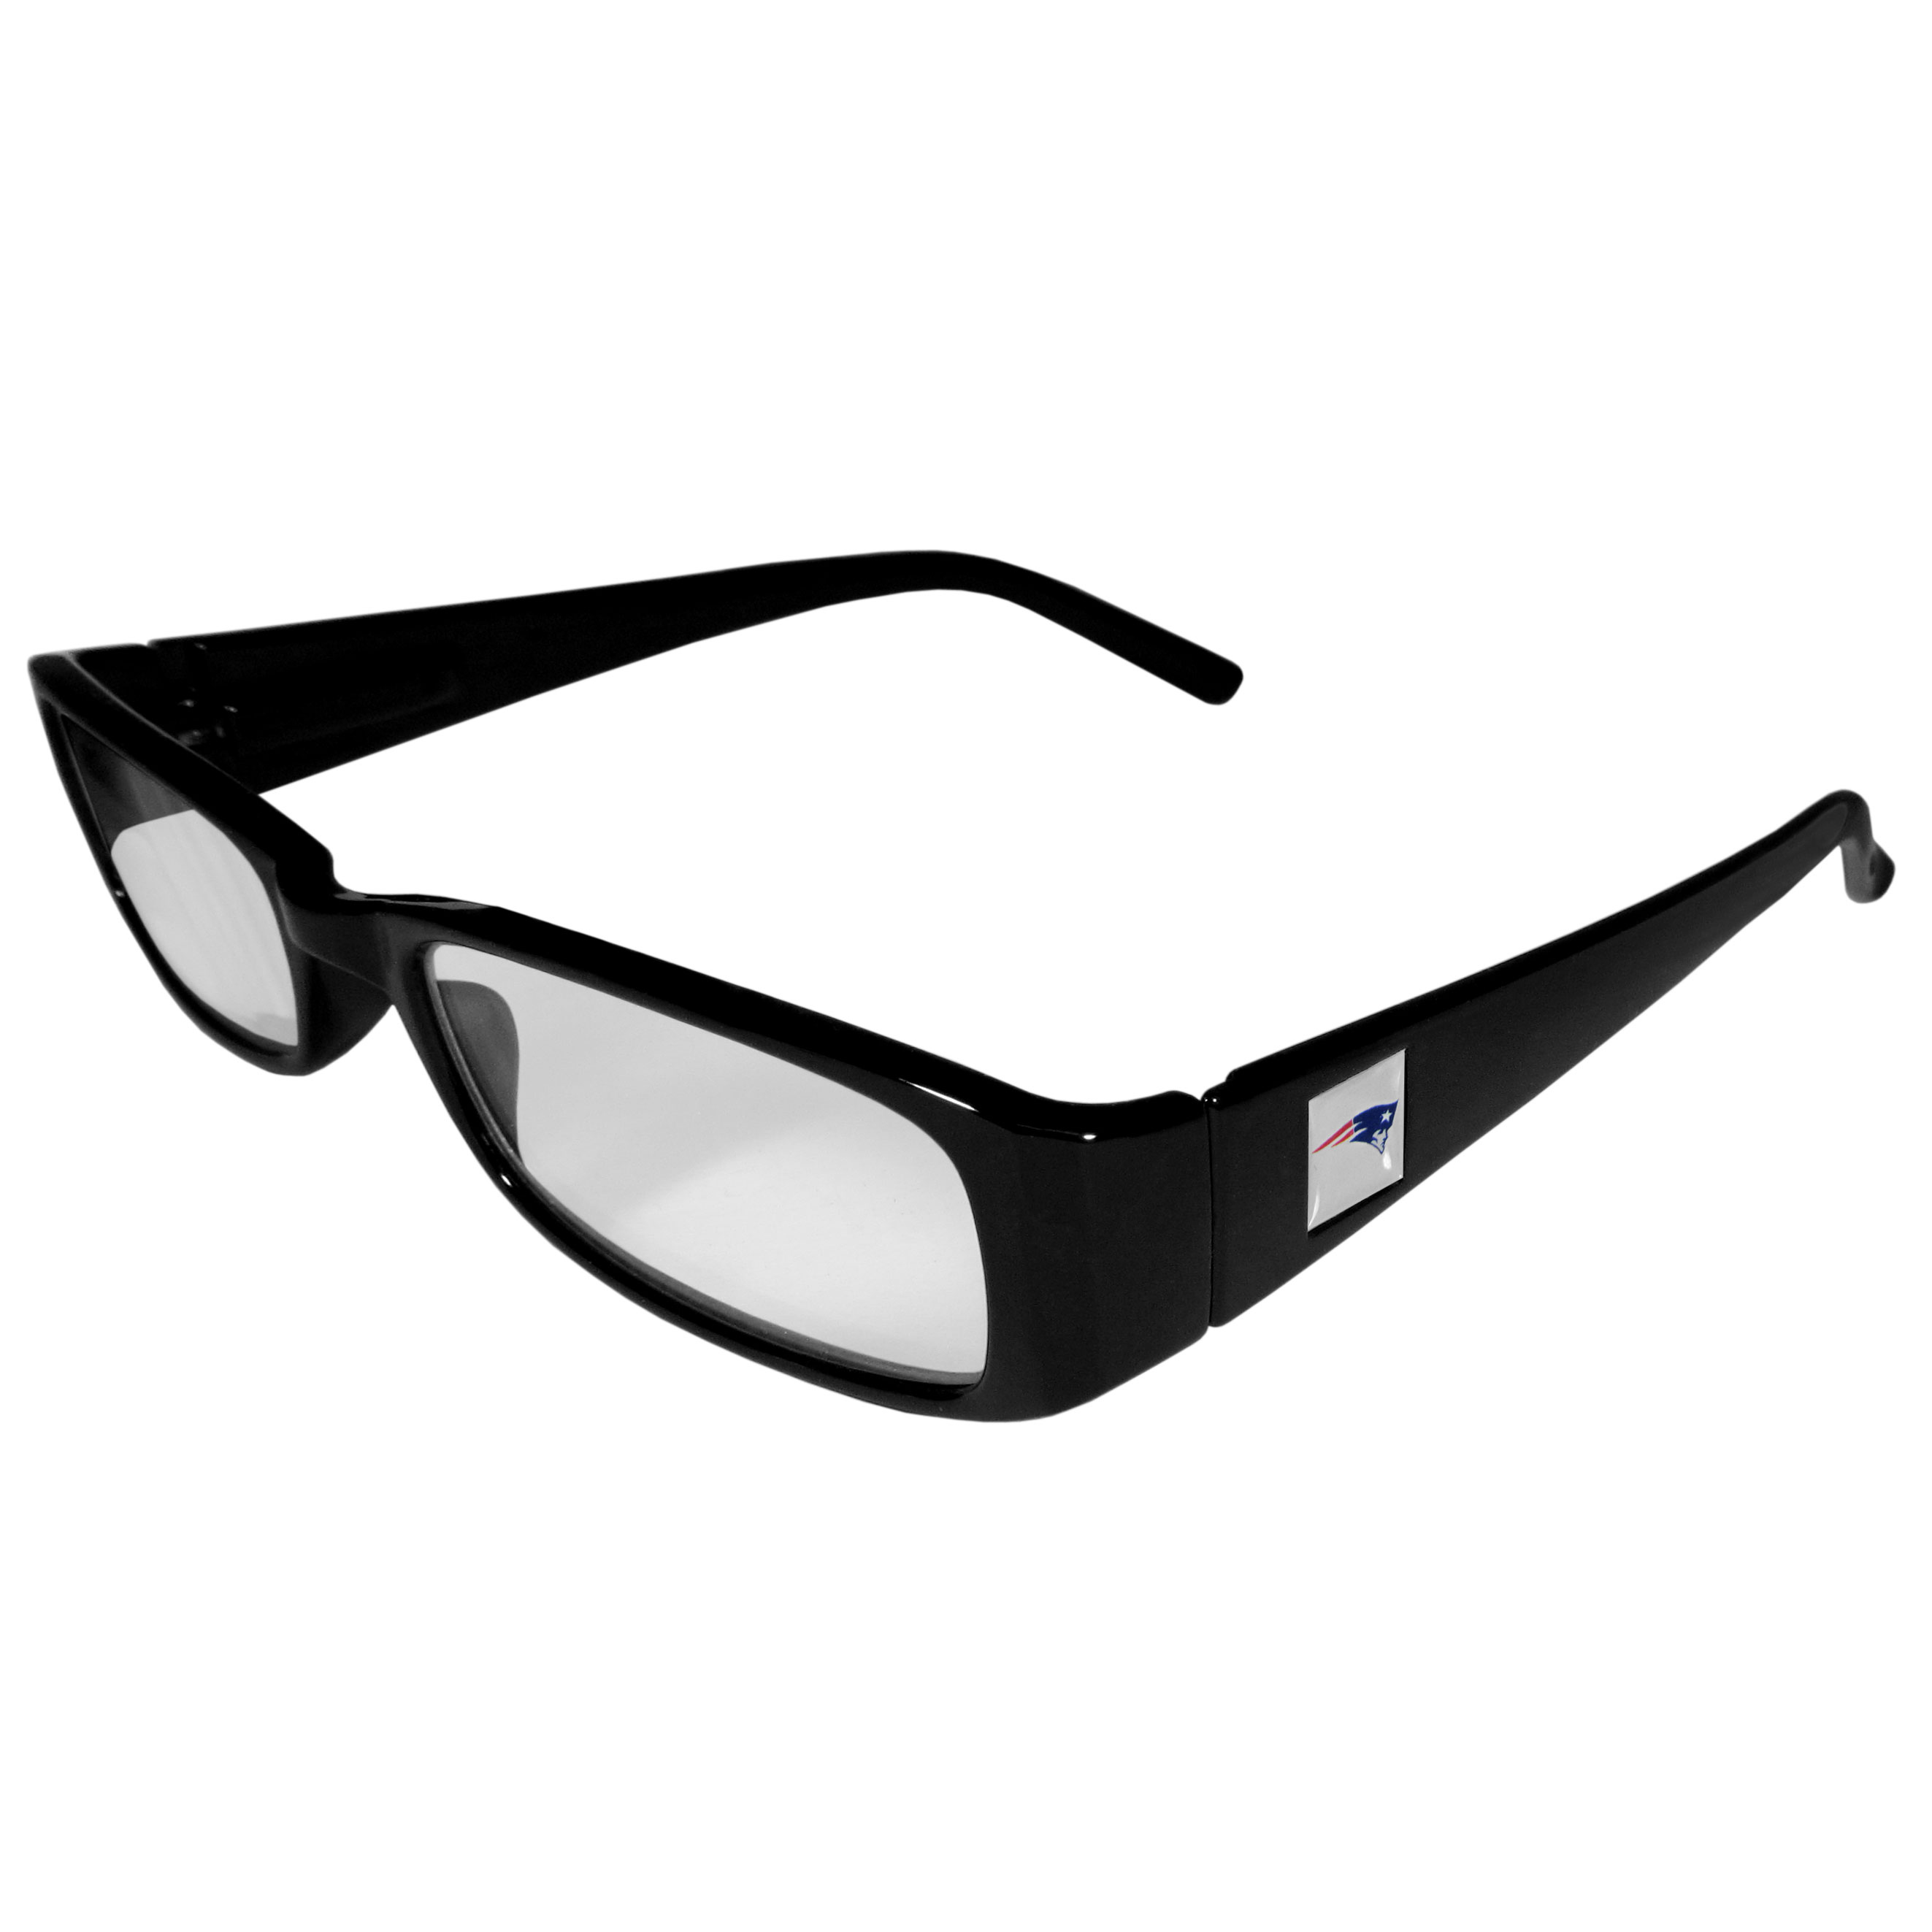 New England Patriots Black Reading Glasses +1.25 - Our New England Patriots reading glasses are 5.25 inches wide and feature the team logo on each arm. Magnification Power 1.25